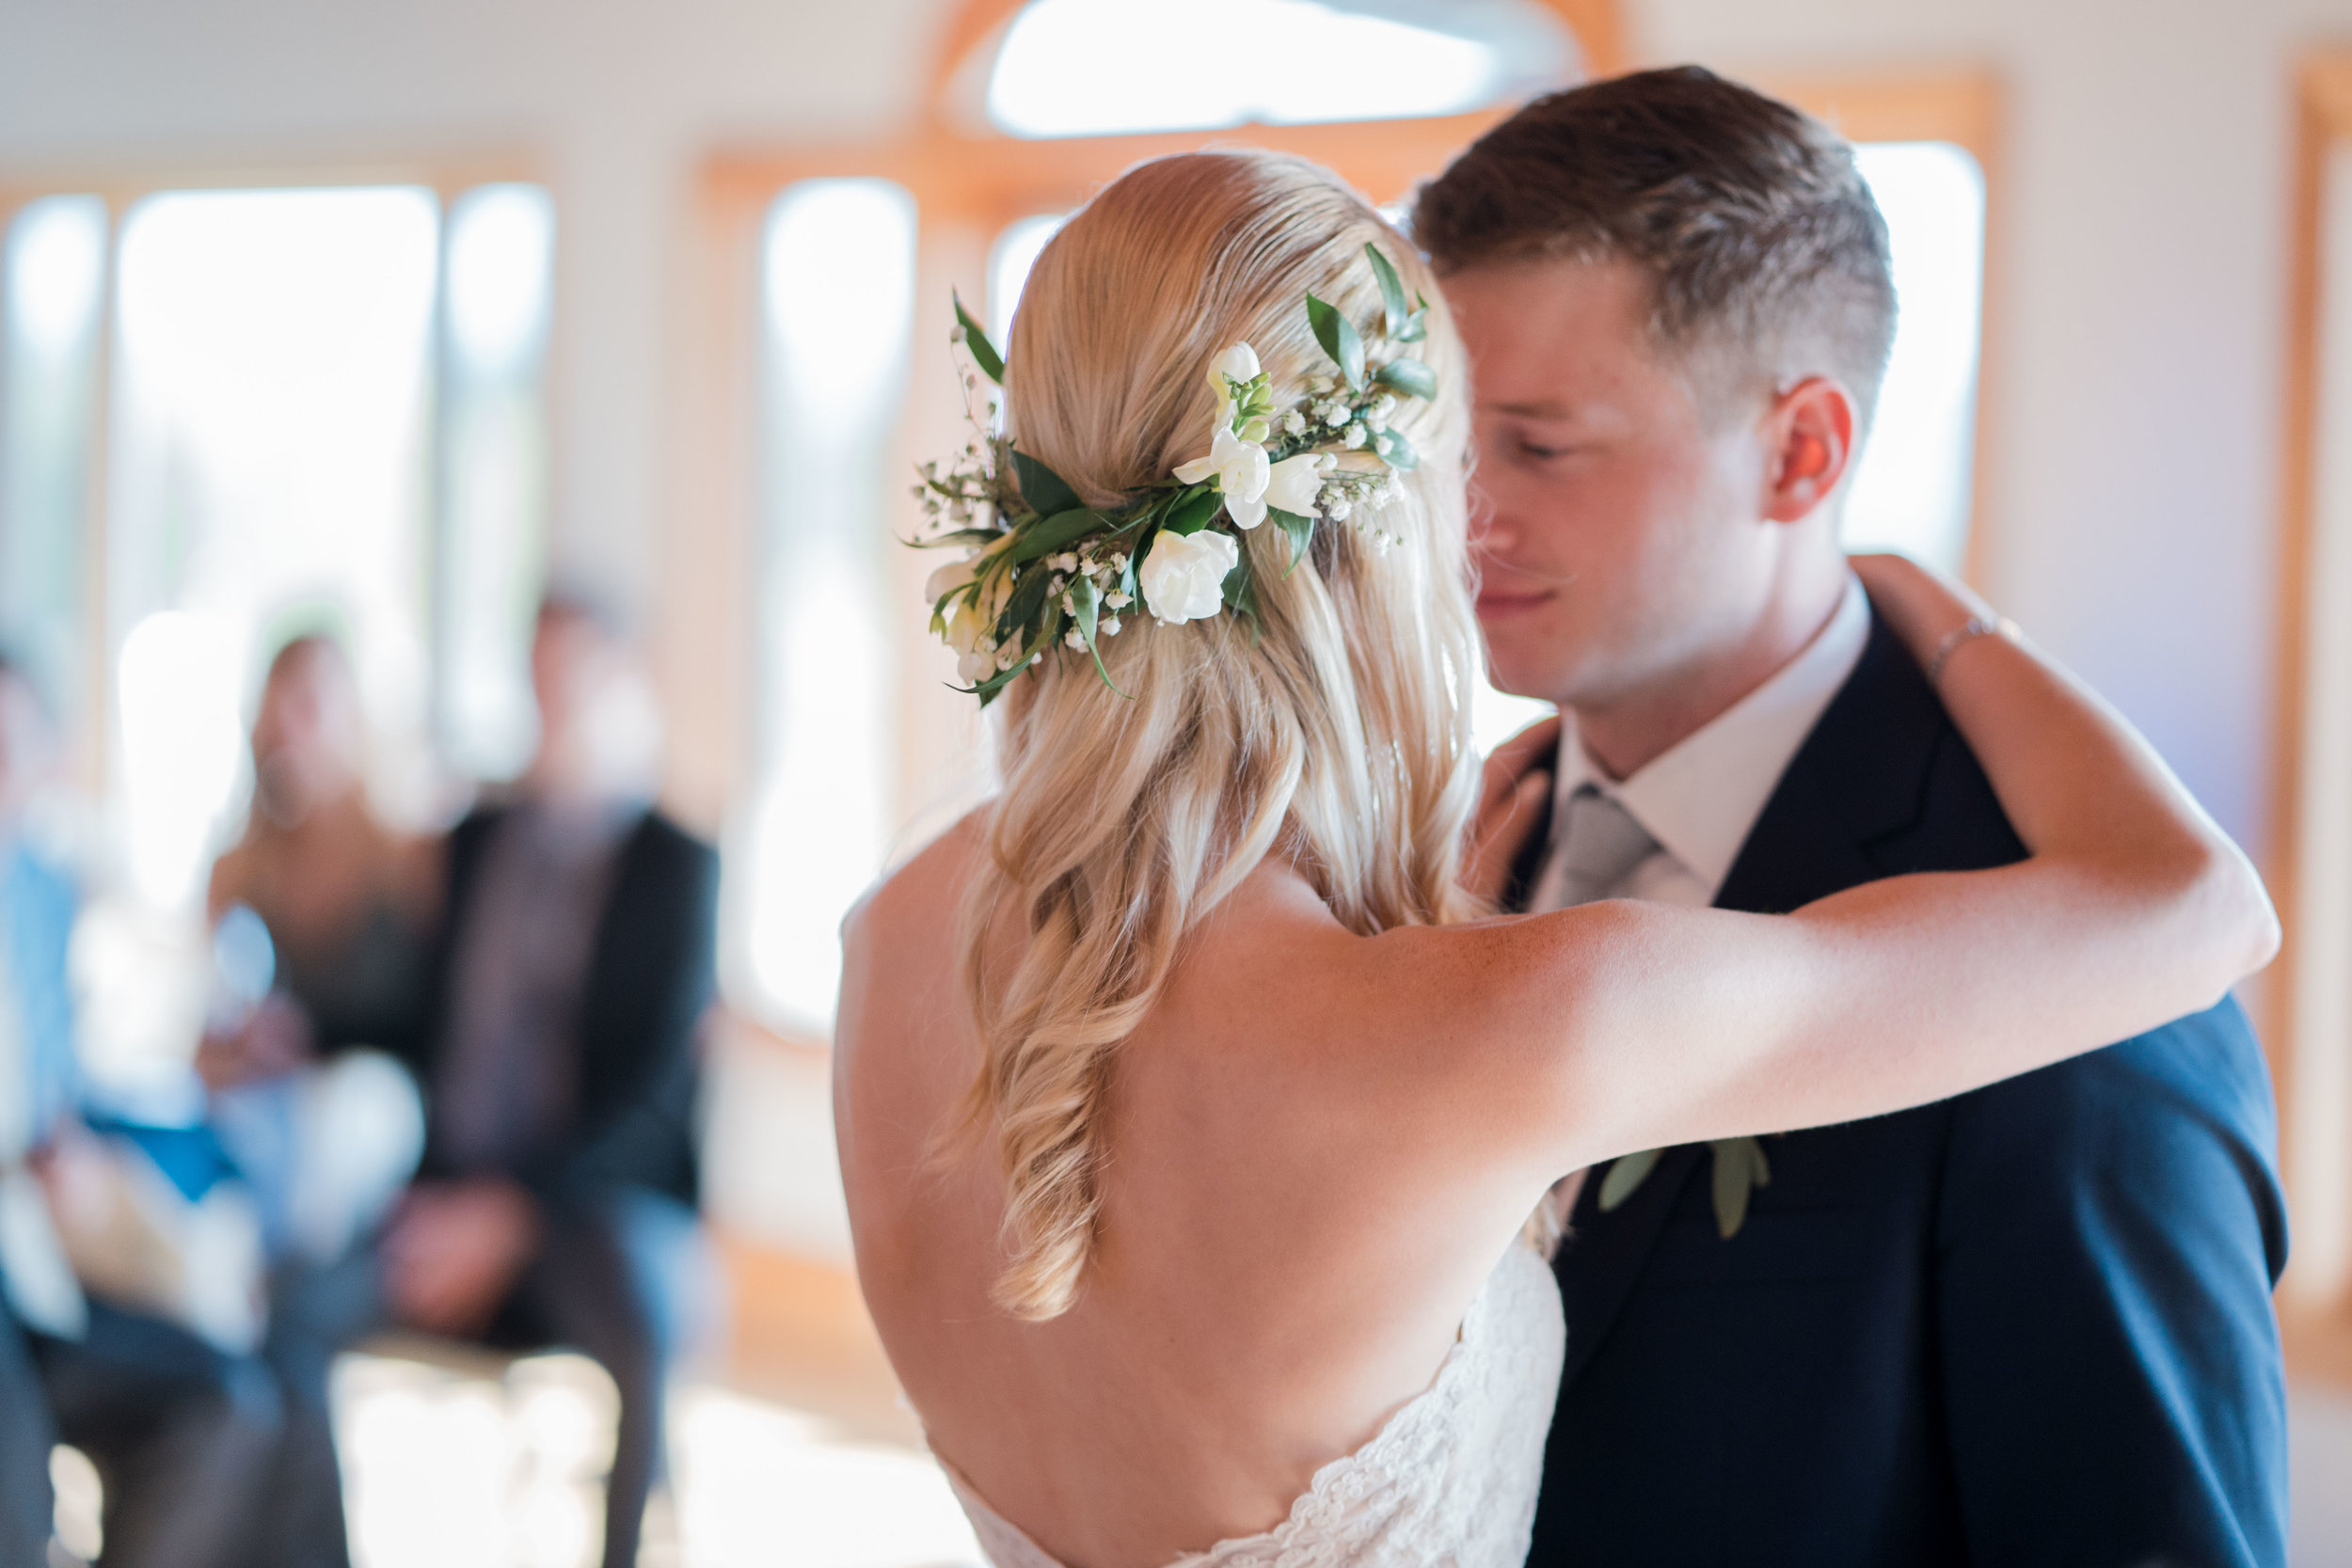 Wedding Photography at Wagner Vineyards Ginny Lee Cafe Finger Lakes by Stefan Ludwig Photography-75.jpg